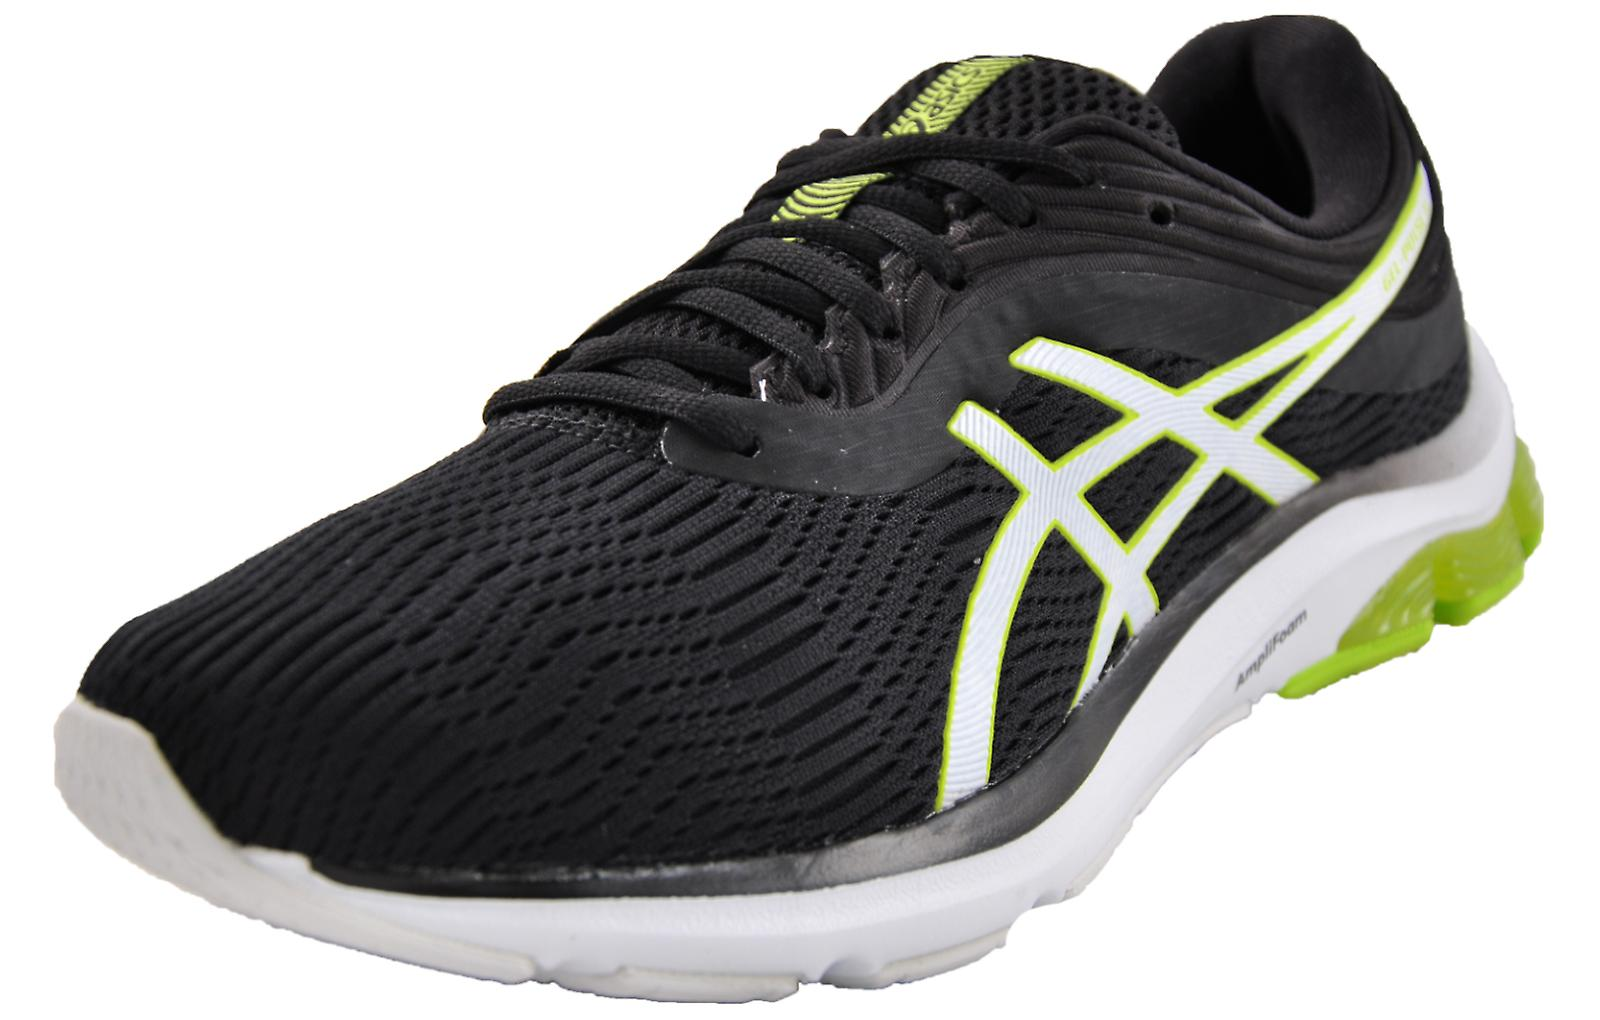 Asics Gel-Pulse 11 Black / Neon Lime